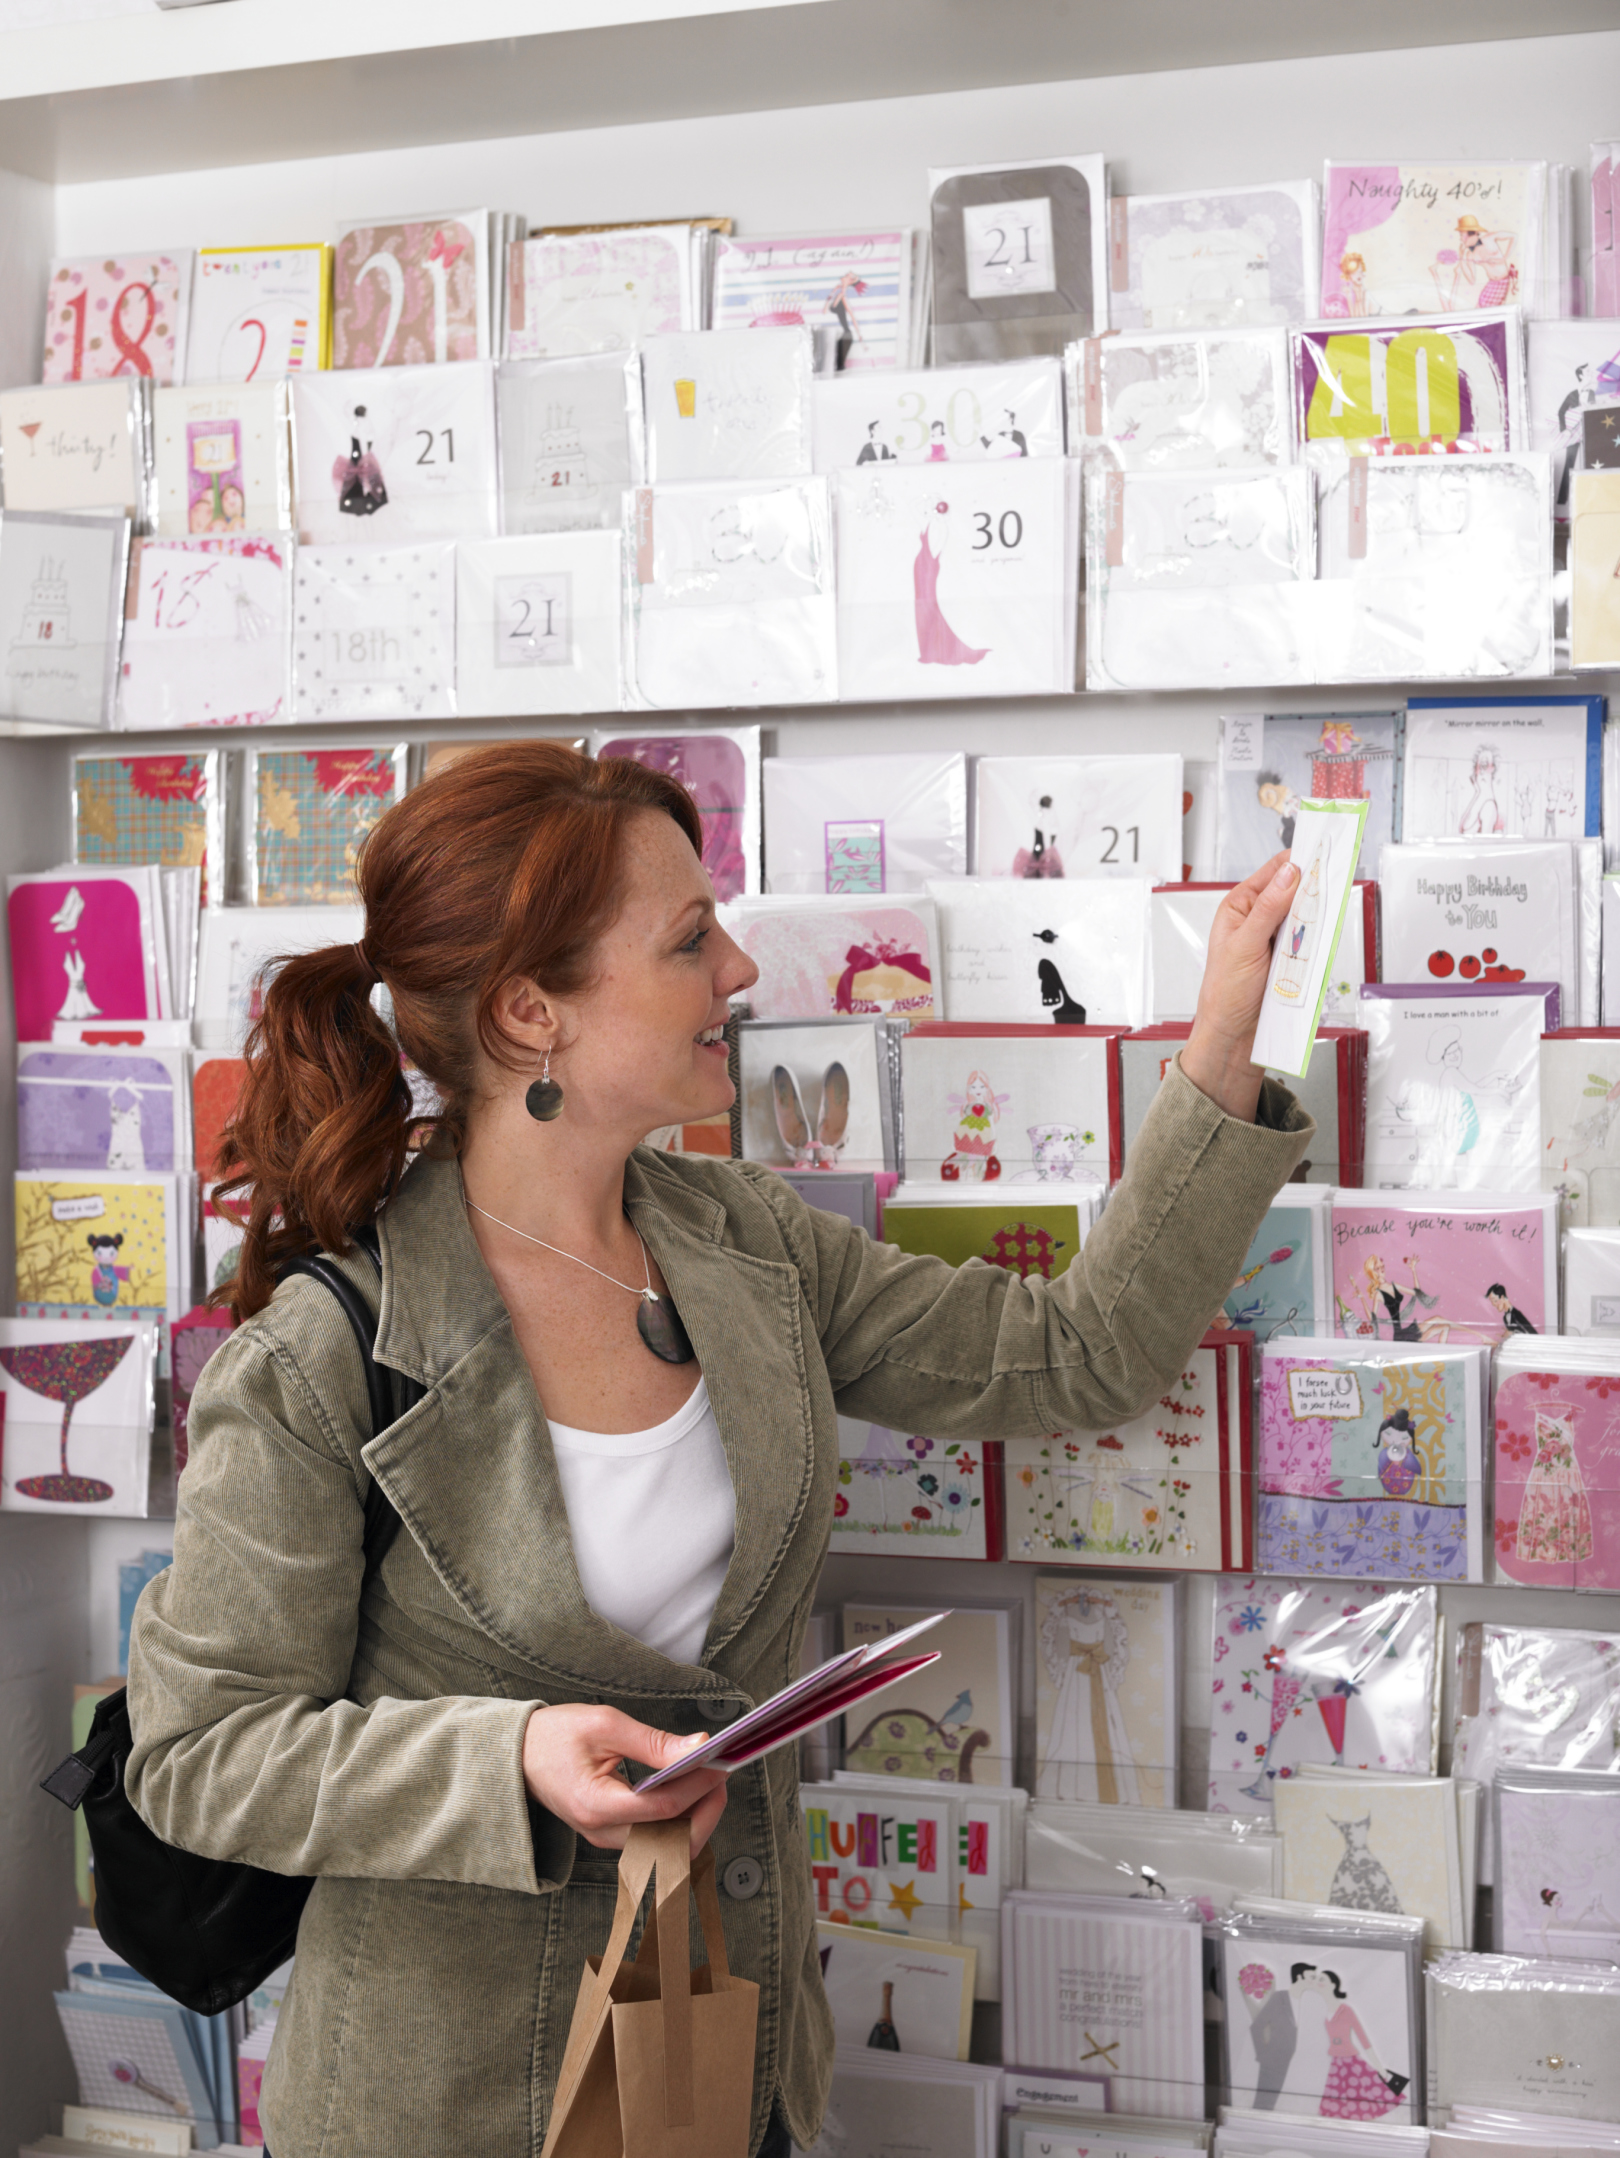 How to sell photos to greeting card companies chron kristyandbryce Images